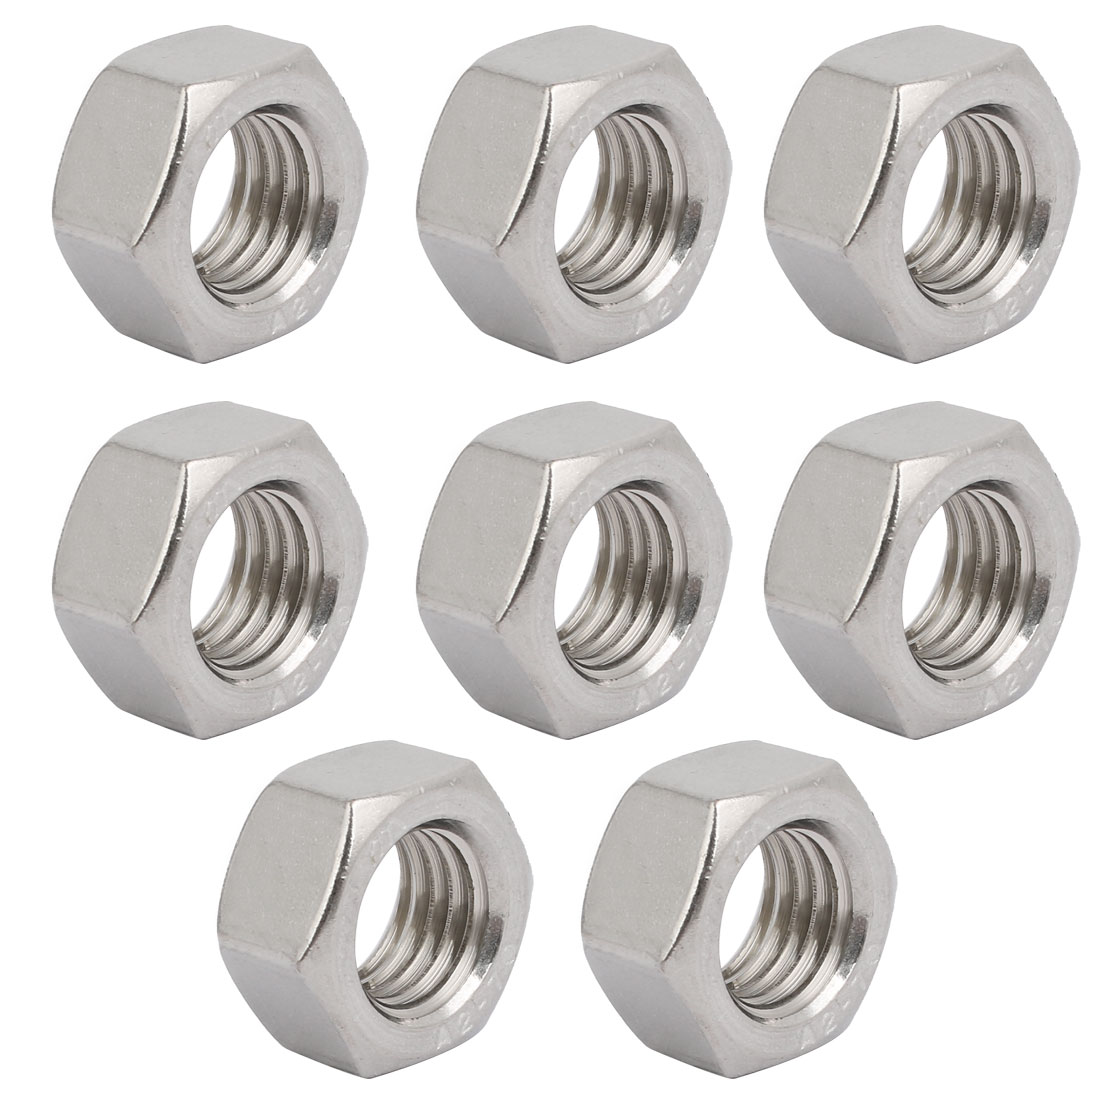 8pcs M18 x 2.5mm Pitch Metric Thread 304 Stainless Steel Left Hand Hex Nuts